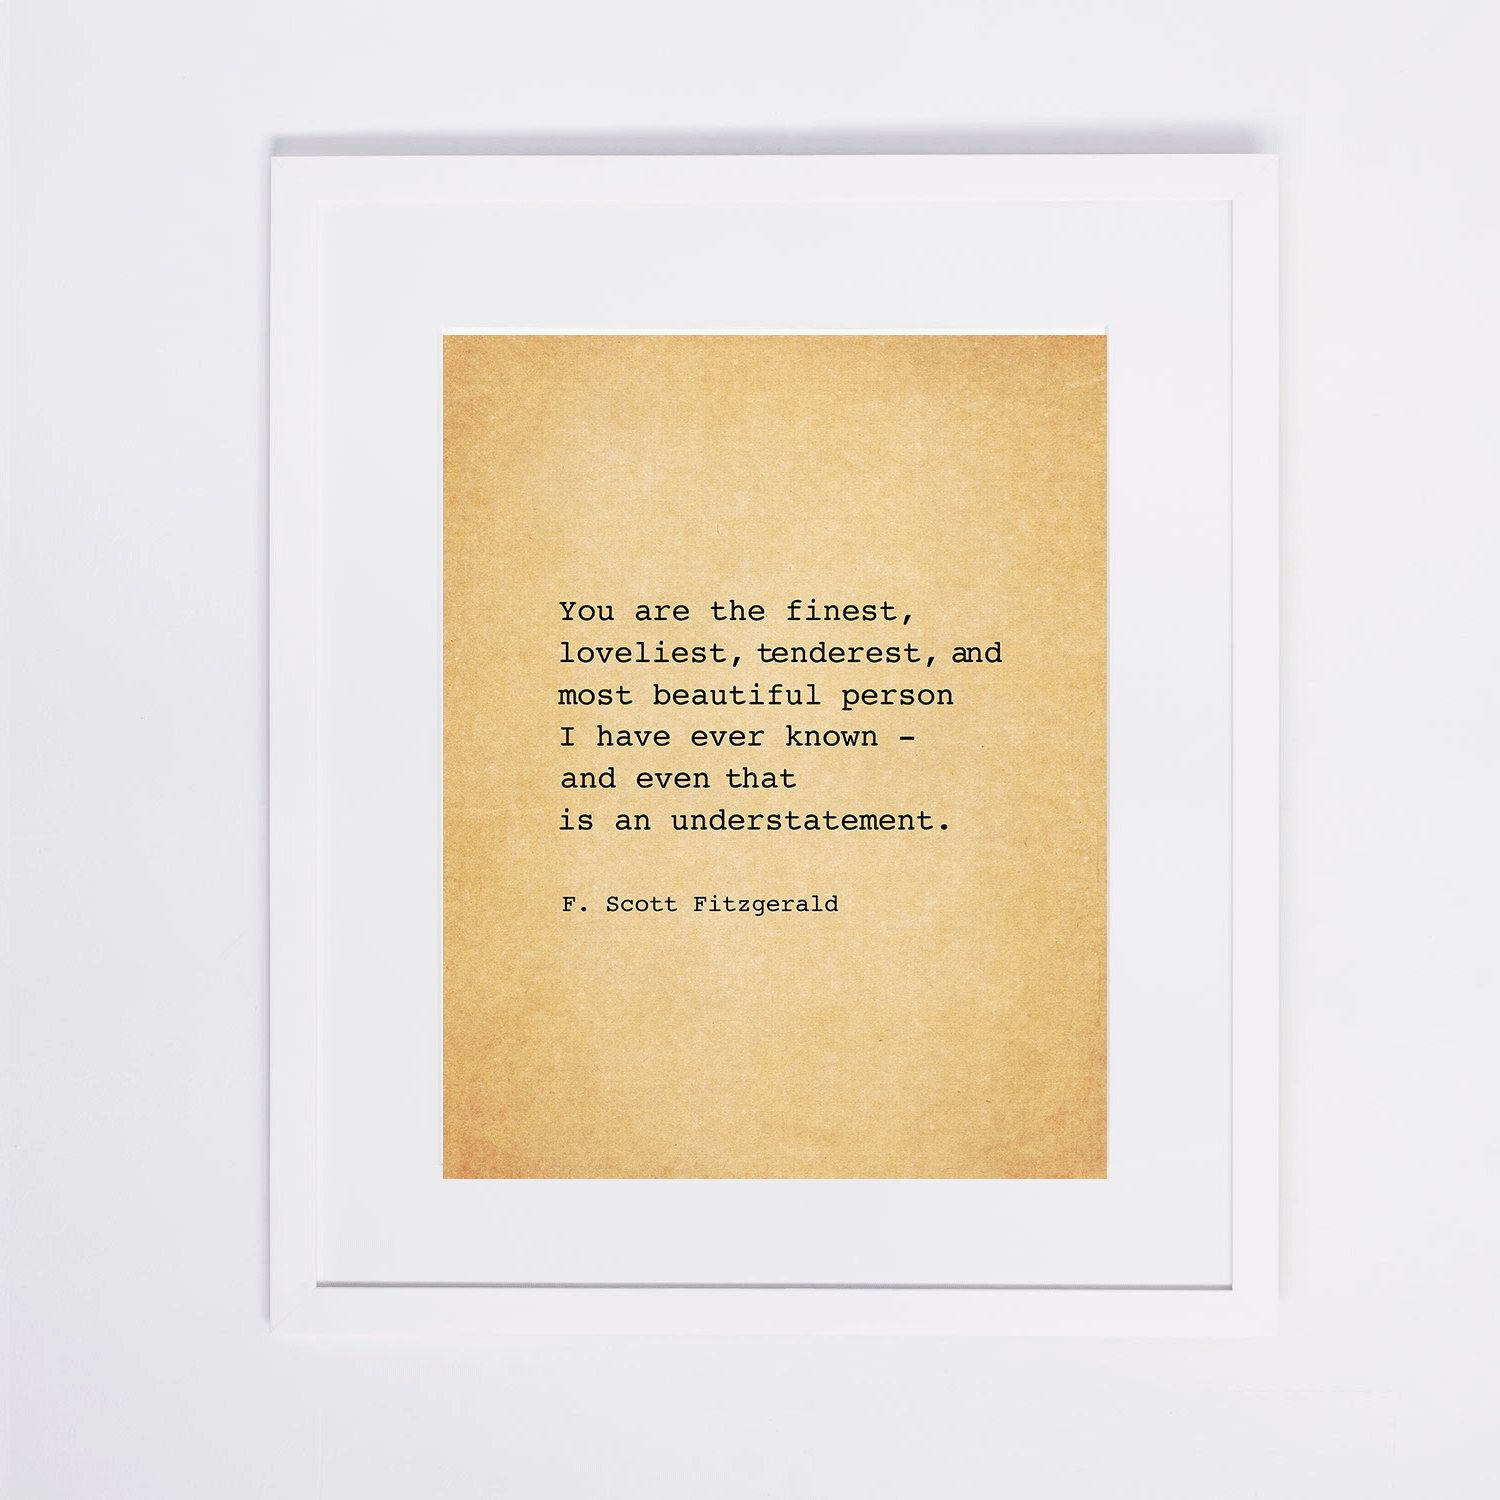 F Scott Fitzgerald Love Quote Fscott Fitzgerald Love Quote  4X7 8X10 11X14  Home Decor